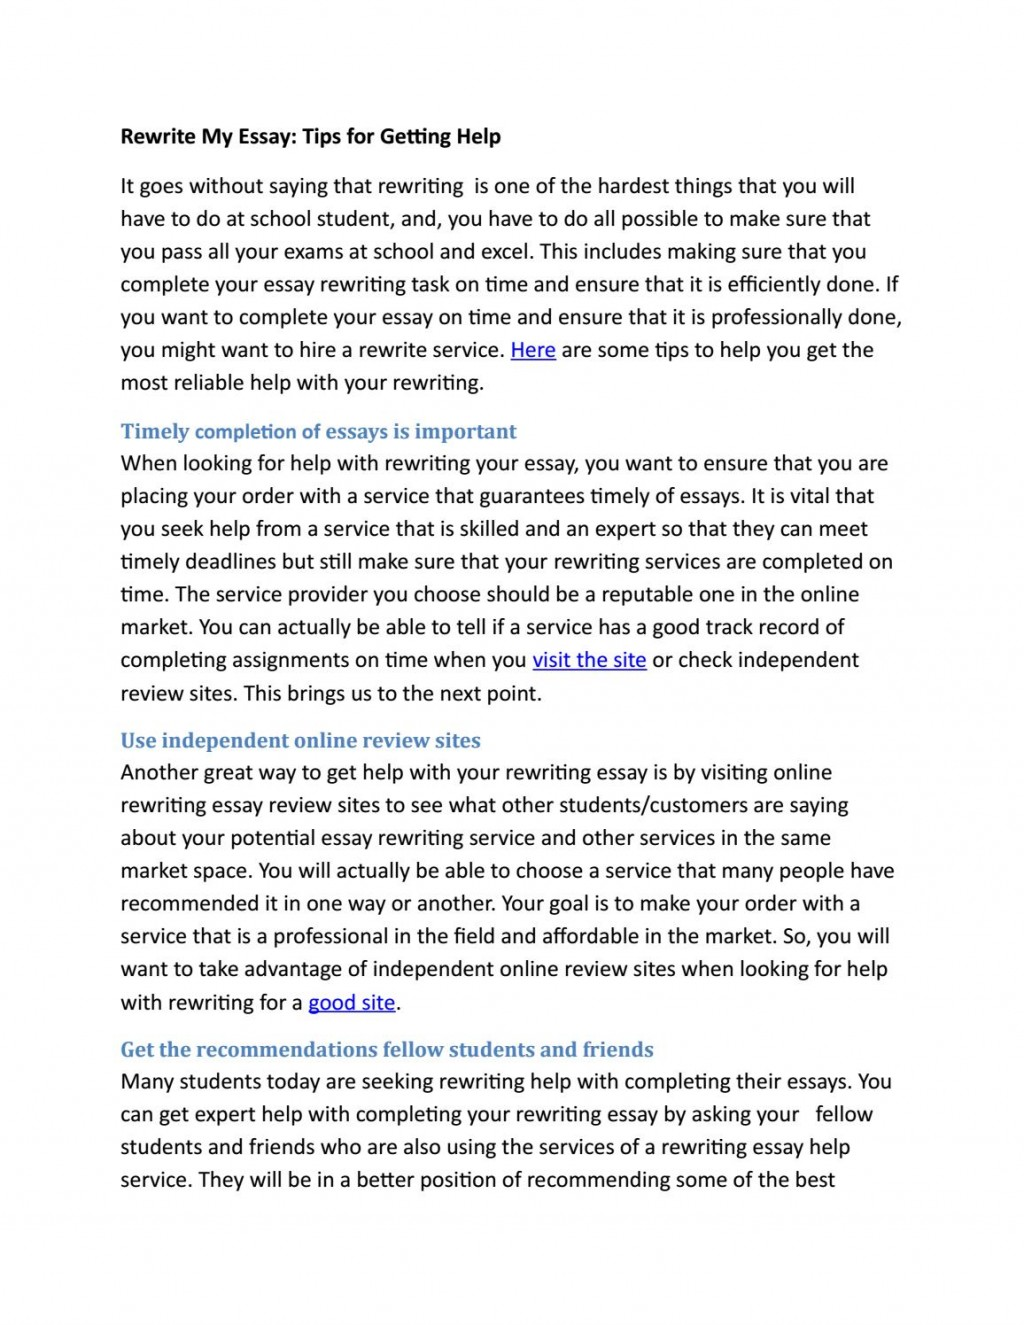 005 Rewrite My Essay Page 1 Amazing For Me Service Large